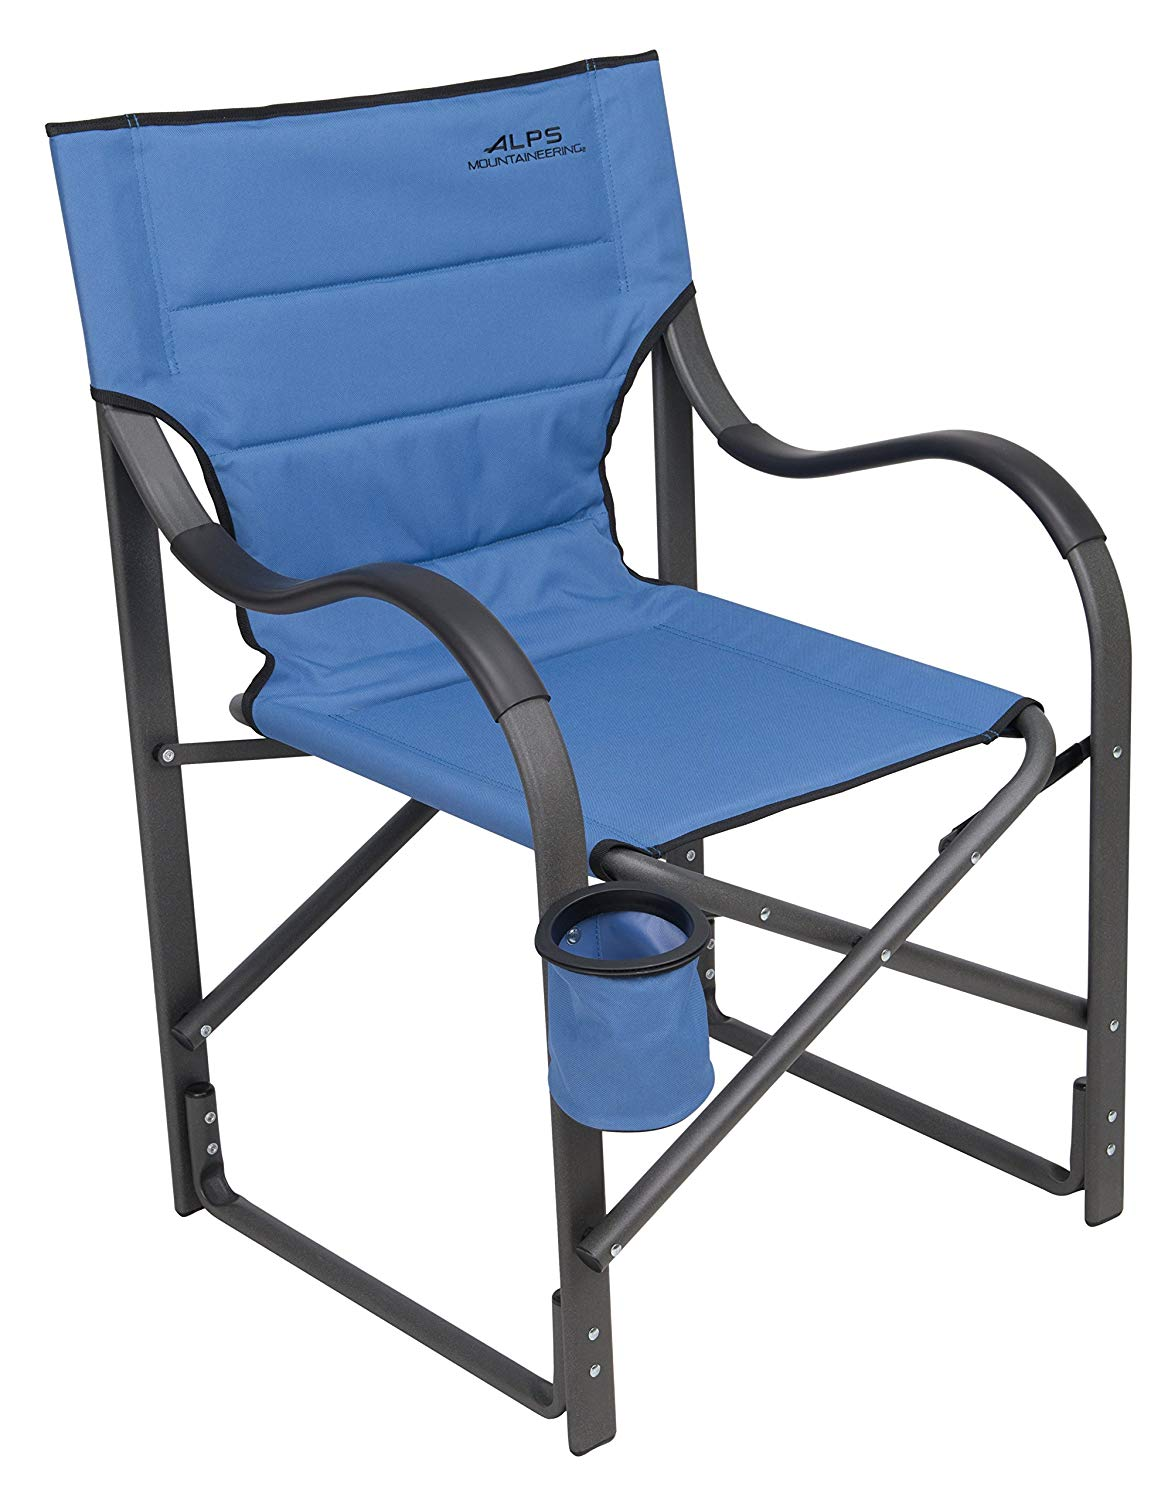 Top 10 Best Camping Chair For Bad Back 2021 Reviews 10